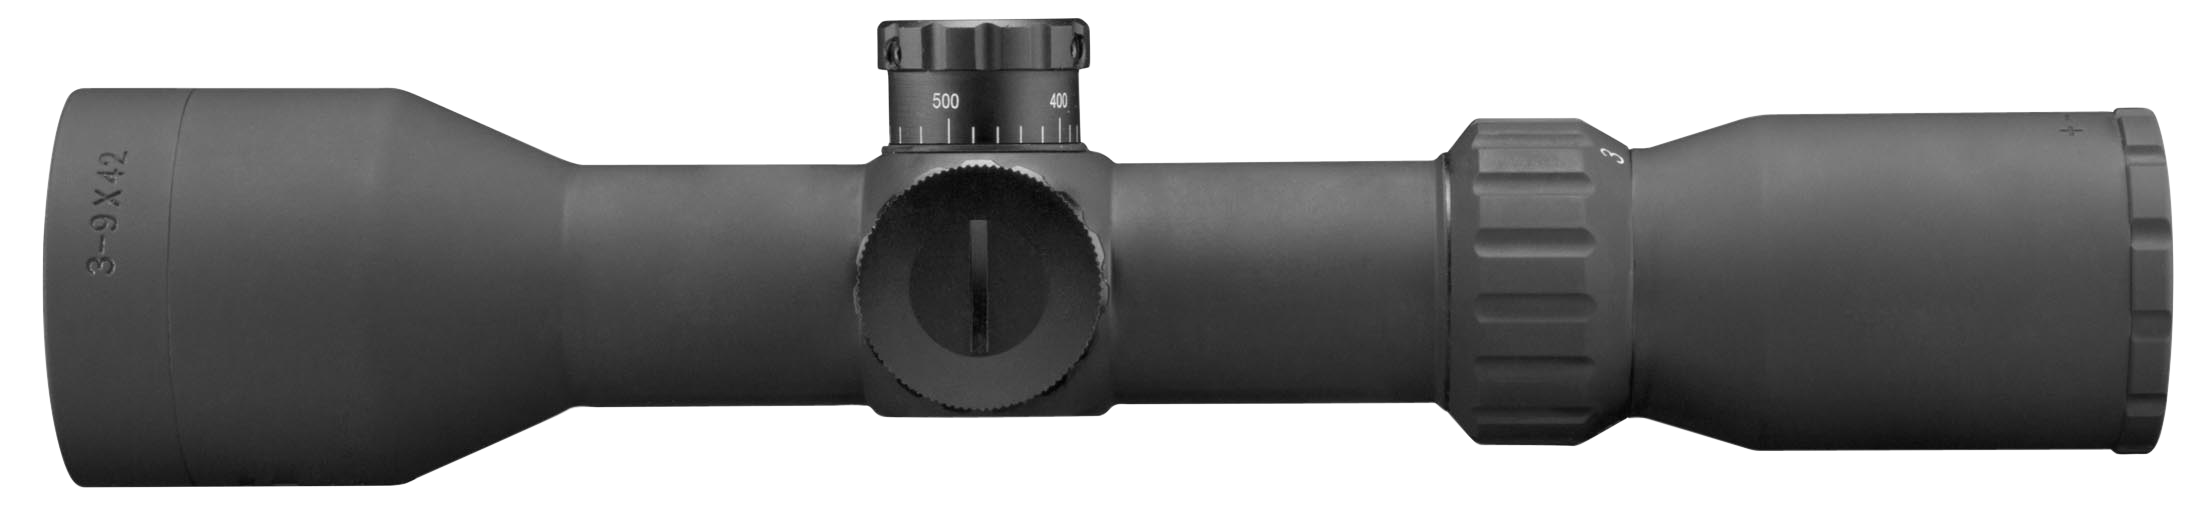 Aim Sports JXPFEM3942G XPF 3-9x 42mm Obj 41.9-14.1 ft @ 100 yds FOV 30mm Tube Black Mil-Dot